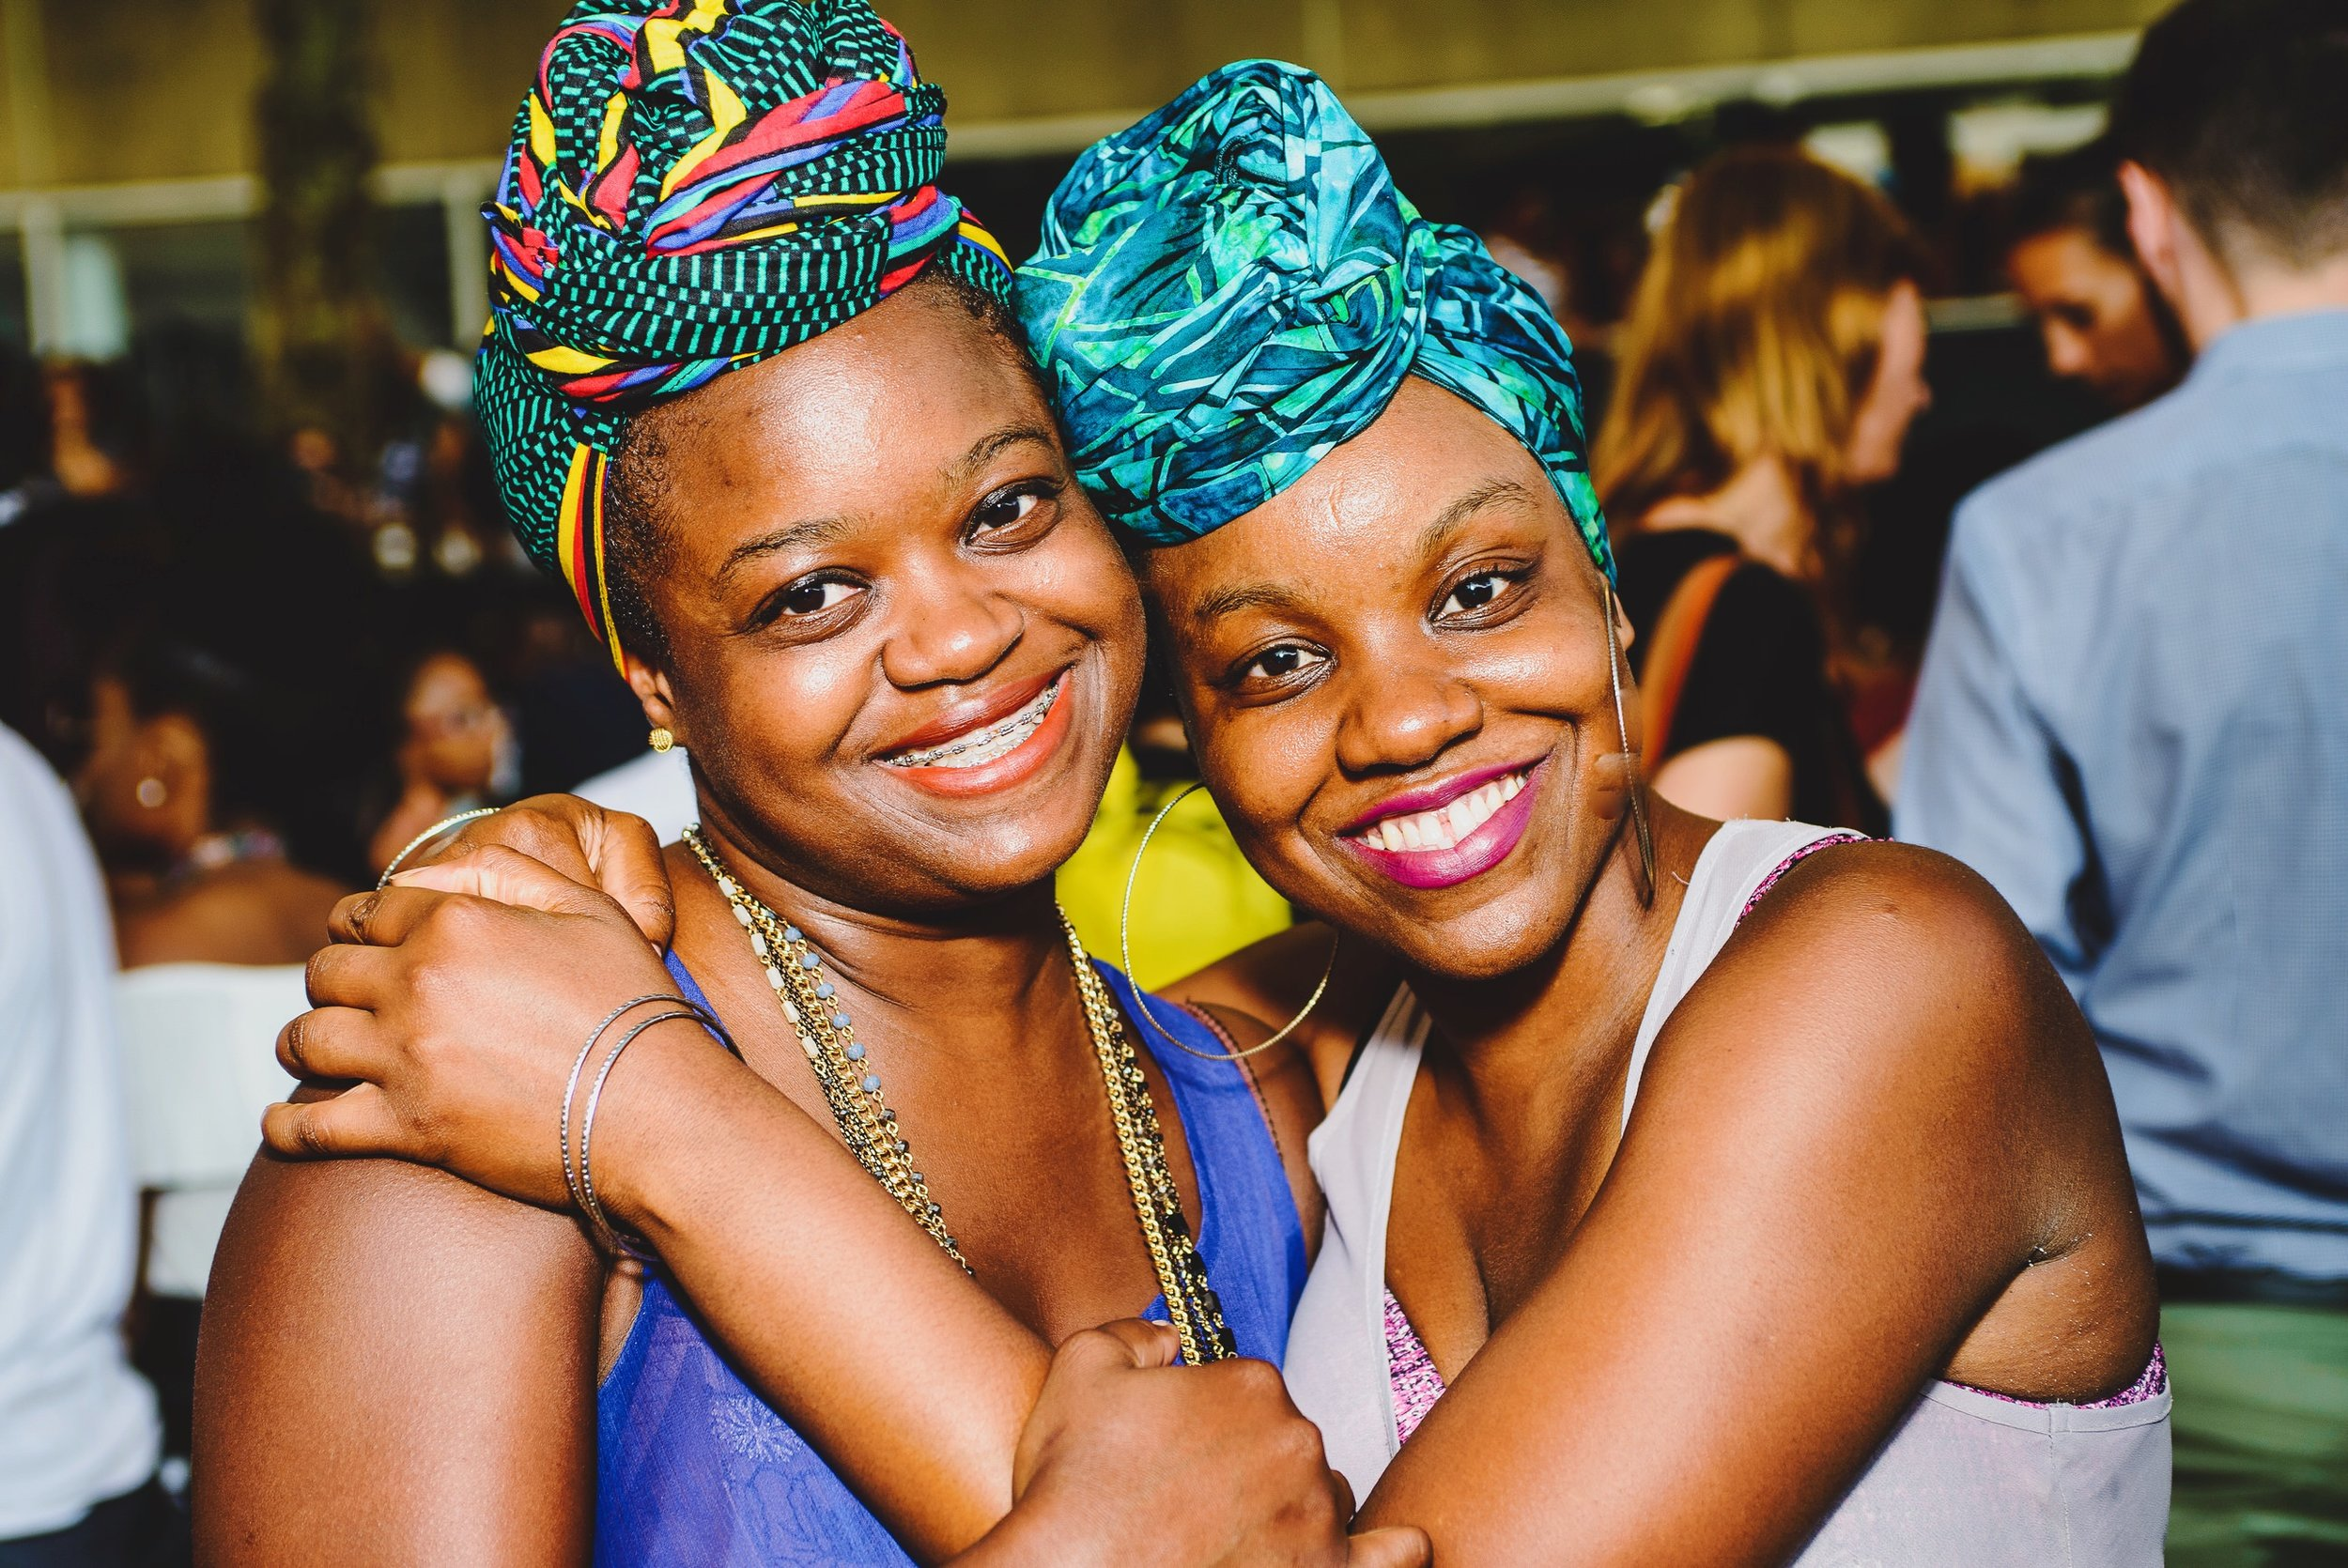 Sisters Asher and Sidon Osbourne (7185064544) at Brooklyn Musuem's CaribBEING Target First Saturday